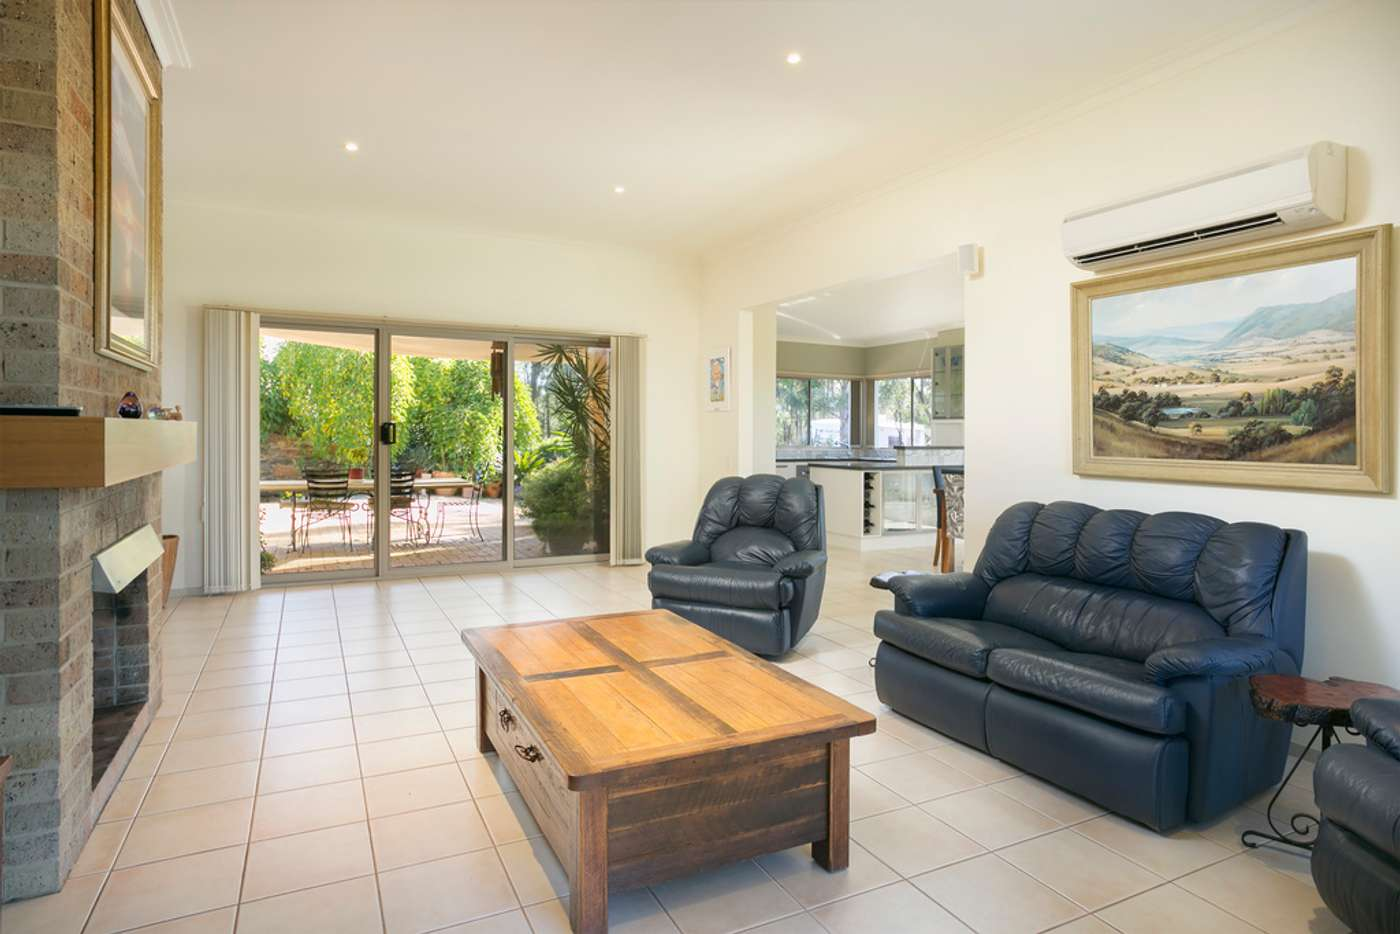 Fifth view of Homely house listing, 55 Tannery Heights Drive, Mandurang VIC 3551